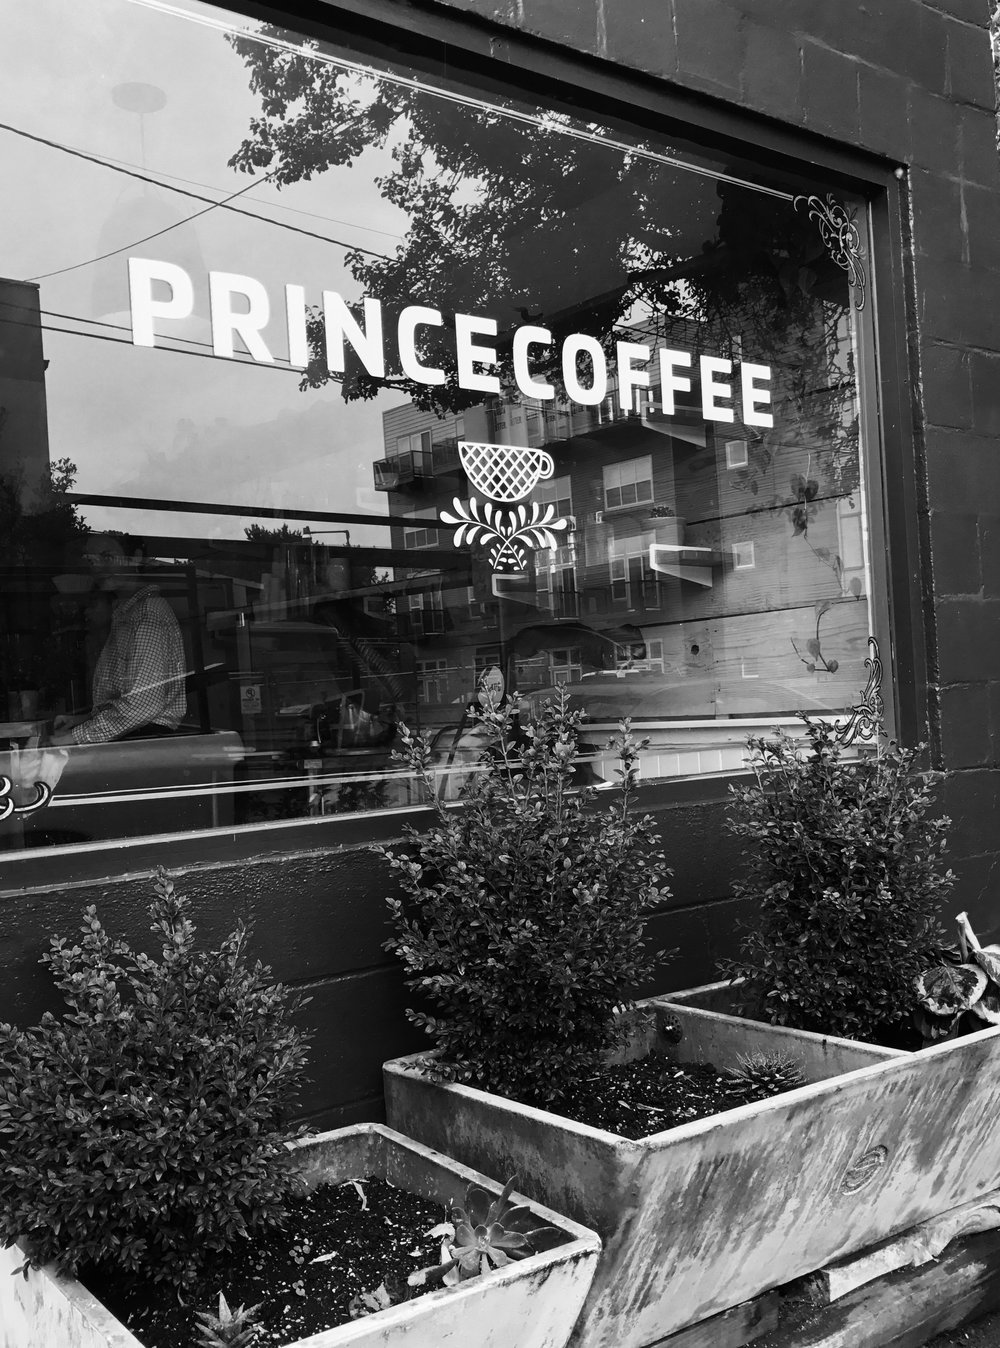 Of course we had to grab coffee at Prince!